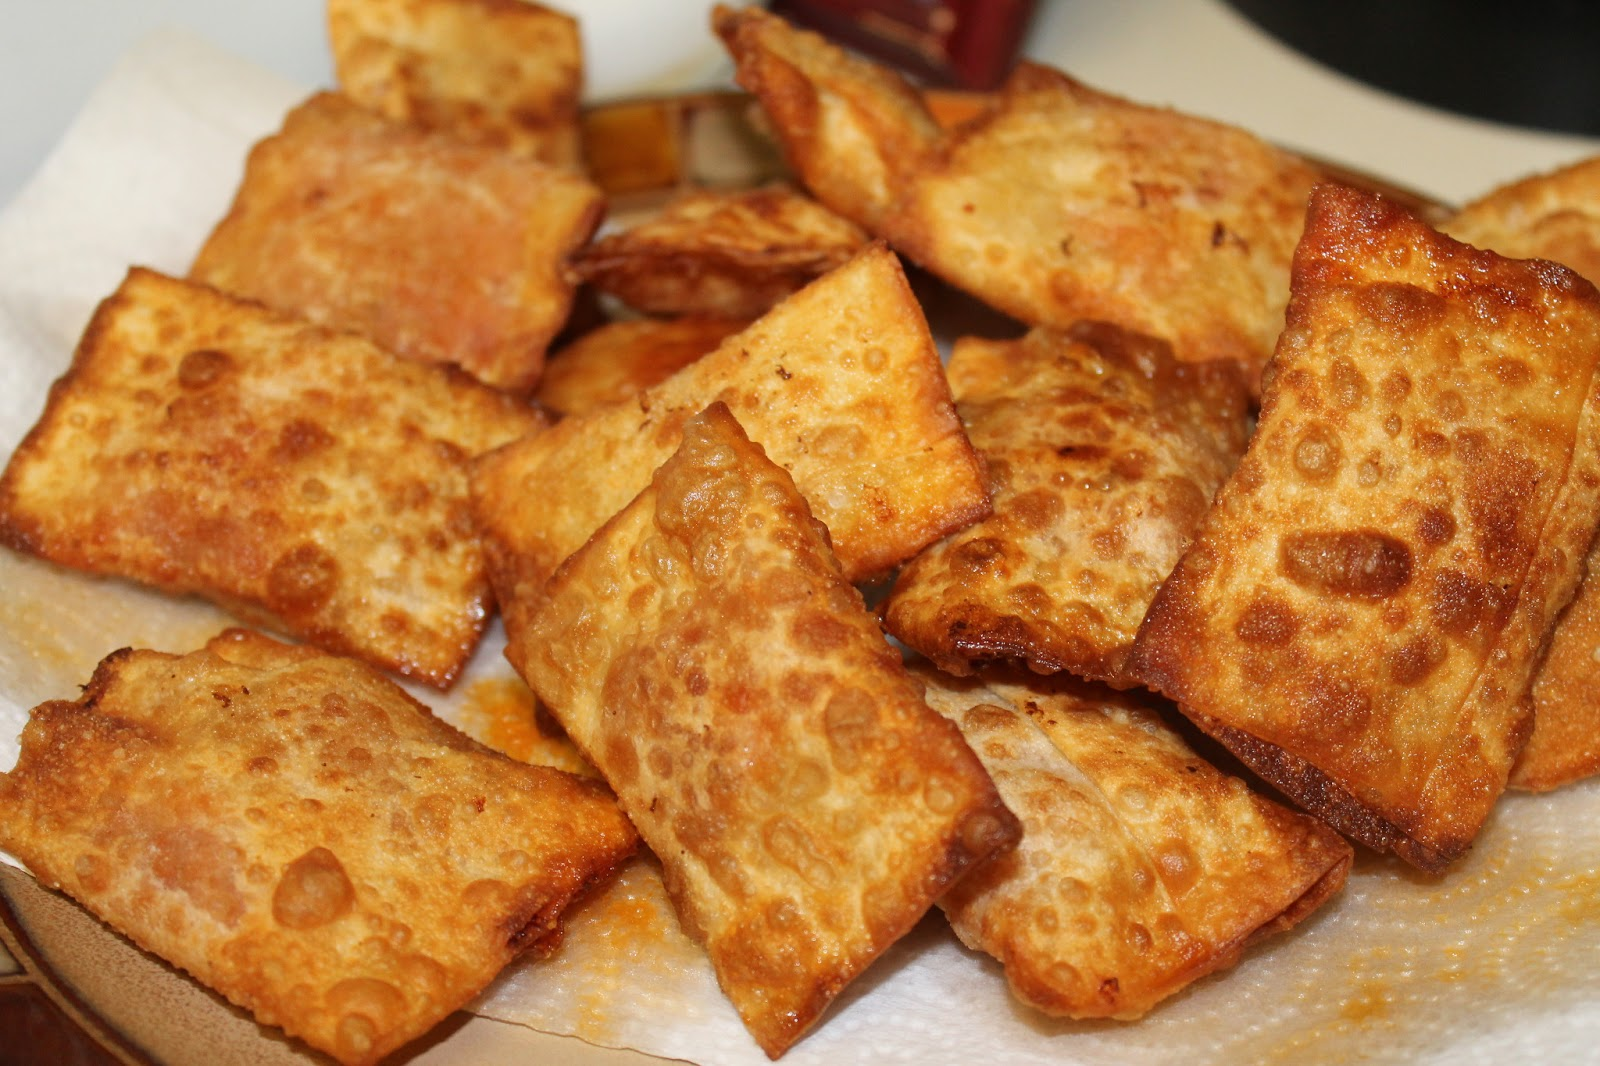 Homemade pizza rolls.